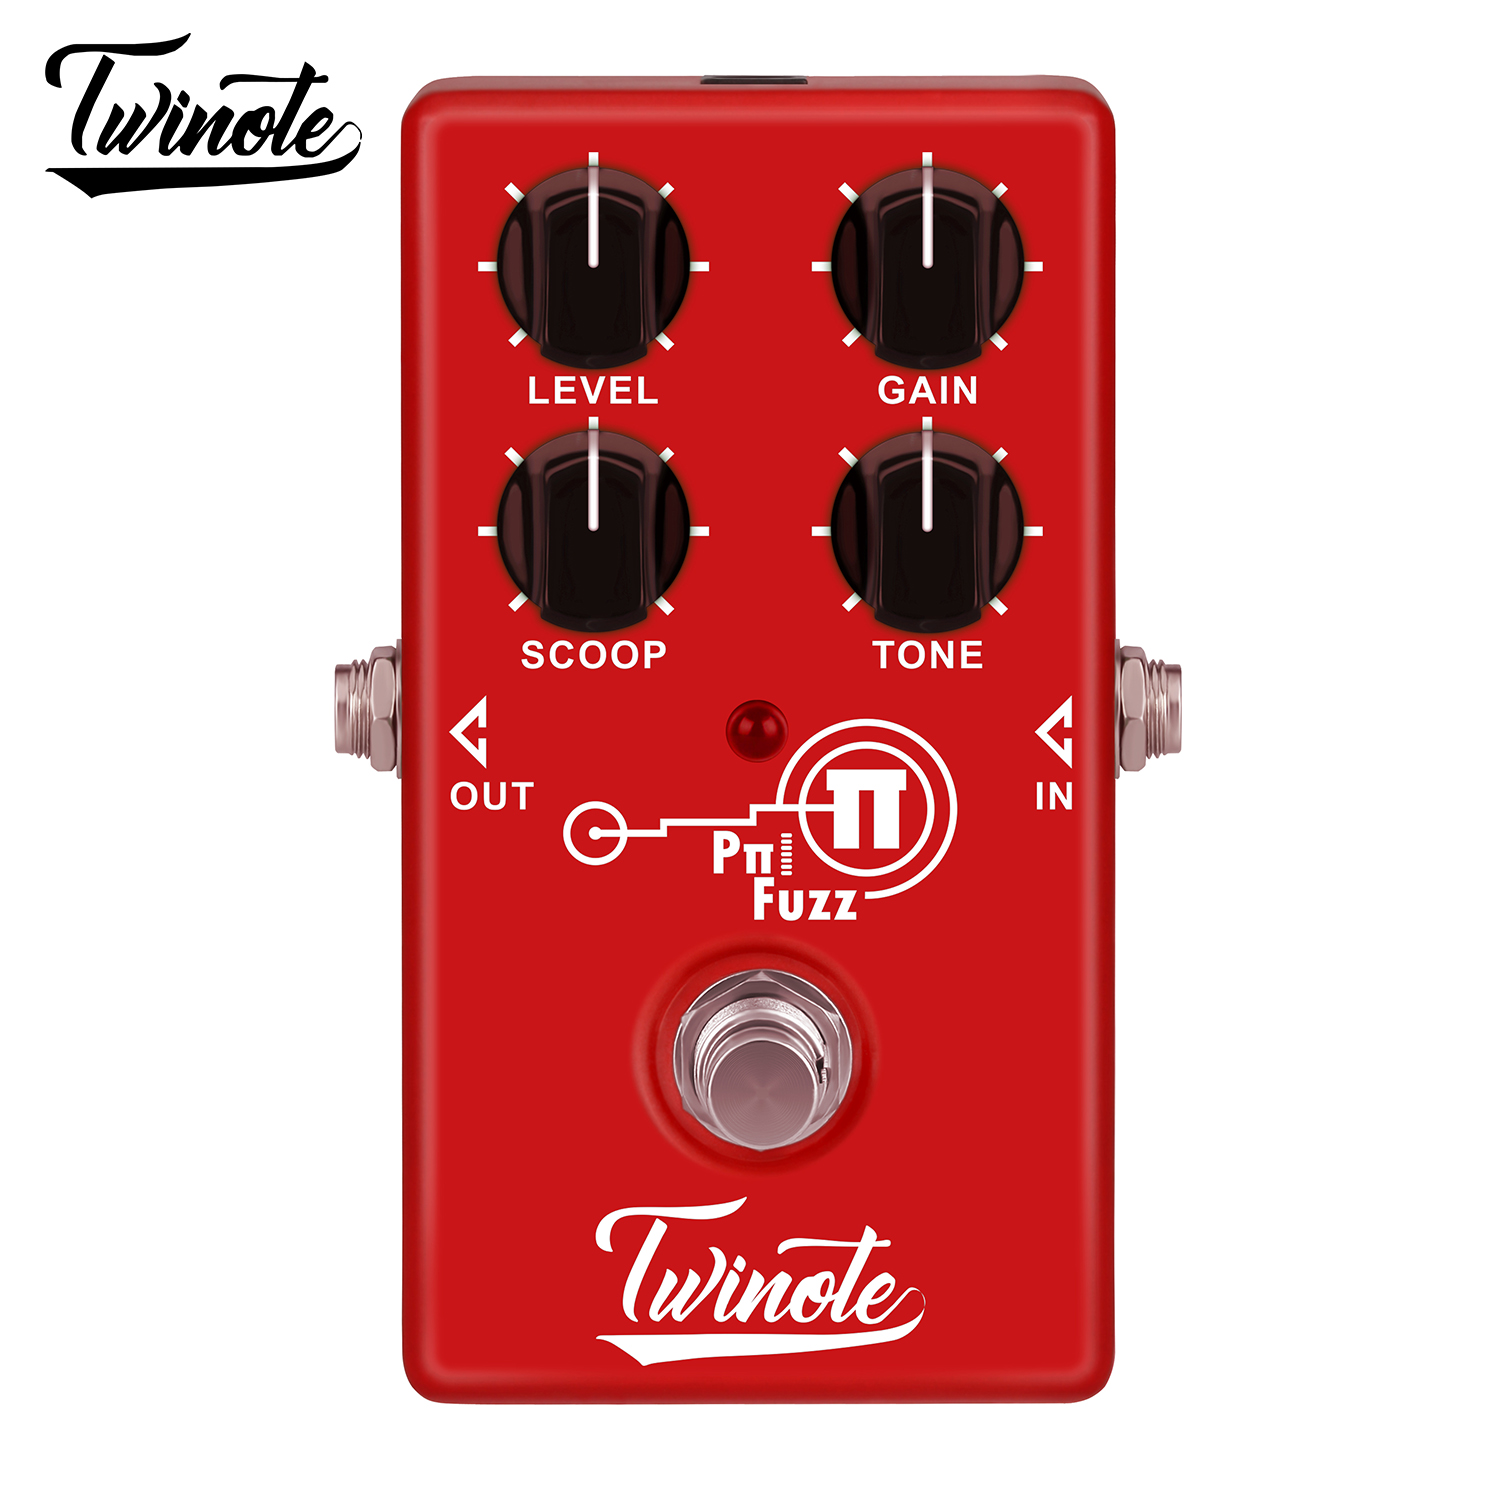 Twinote Ppi FUZZ Electric Guitar Effects Pedal Distortion to Fuzz Gain Circuit Tube Sound Stompbox bar rear axle covers for harley davidson heritage softail classic deluxe flst slim fls flstc flstn flstsb cross bones 2008 2017